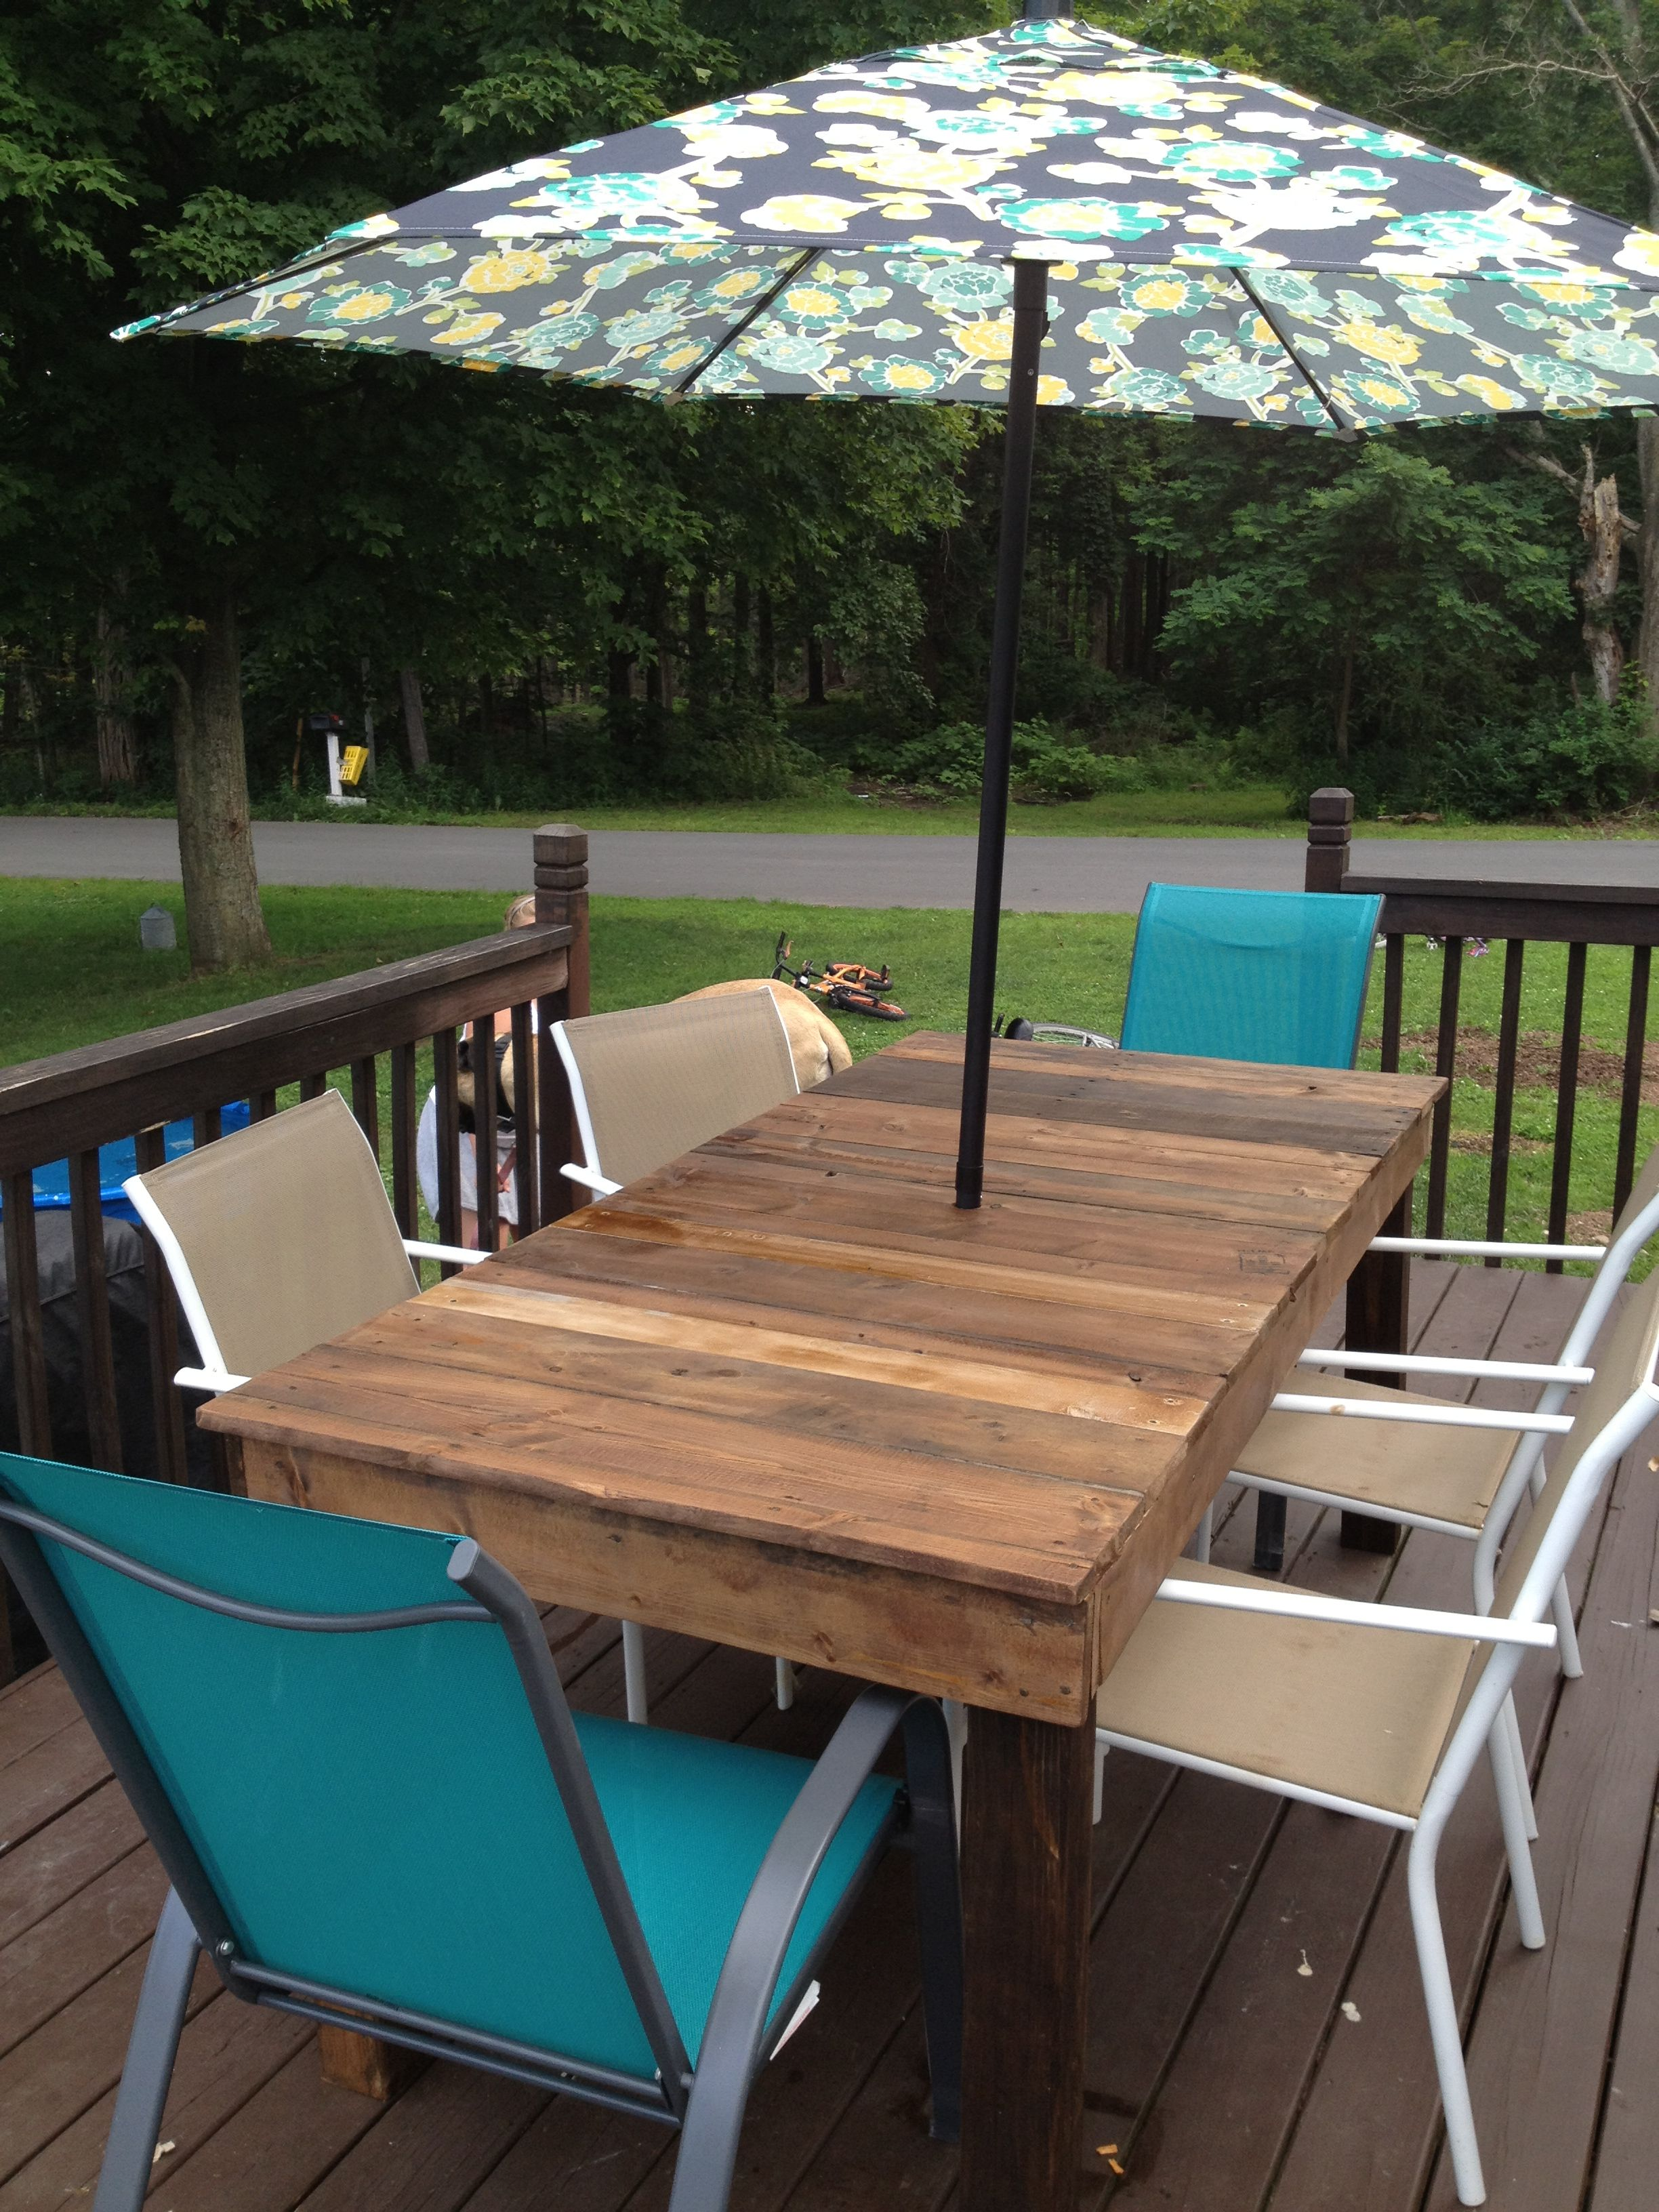 Picnic Table Made From Recycled Wood Clearance Umbrella And Chairs